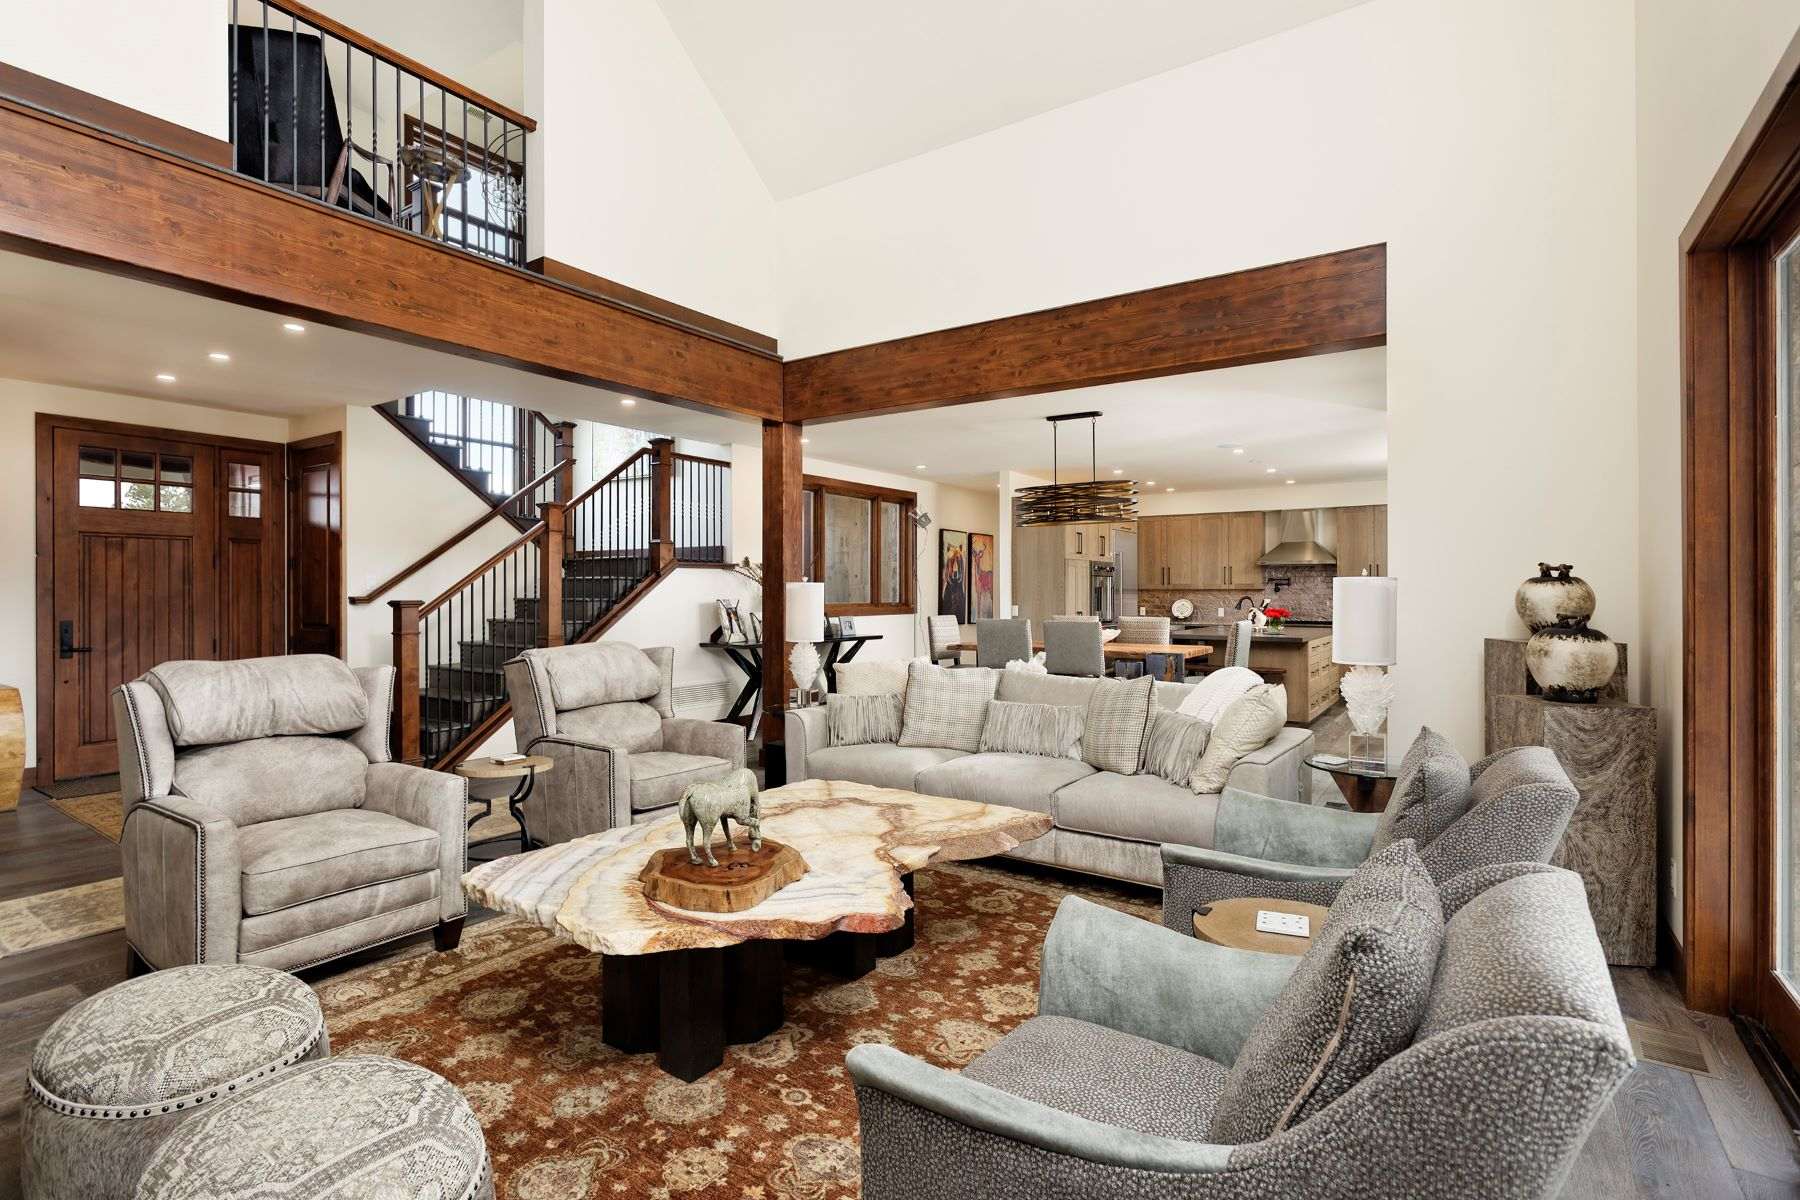 Single Family Homes for Active at Picturesque views of Mt. Sopris 103 Bowles Drive Carbondale, Colorado 81623 United States